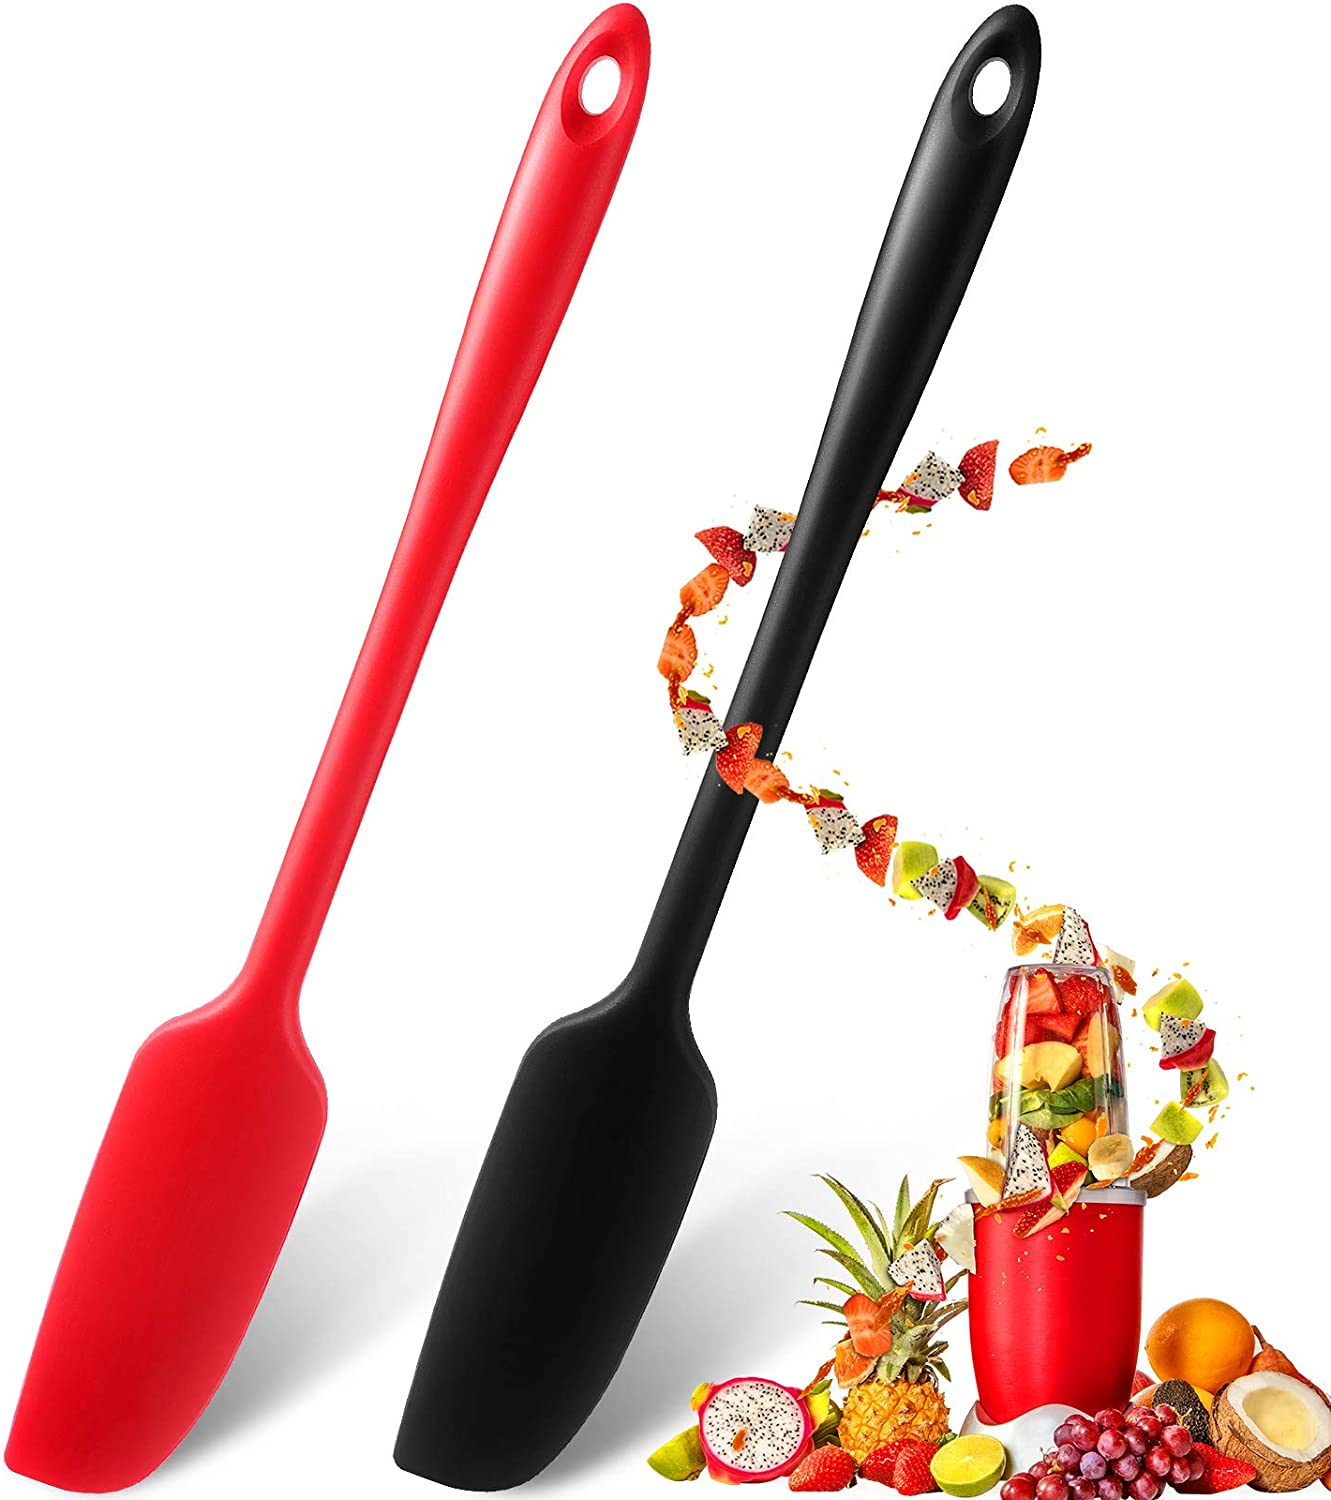 2 Pieces Long Handle Silicone Jar Spatula Non-Stick Rubber Scraper Heat Resistant Spatula Silicone Scraper for Jars, Smoothies, Blenders Cooking Baking Stirring Mixing Tools